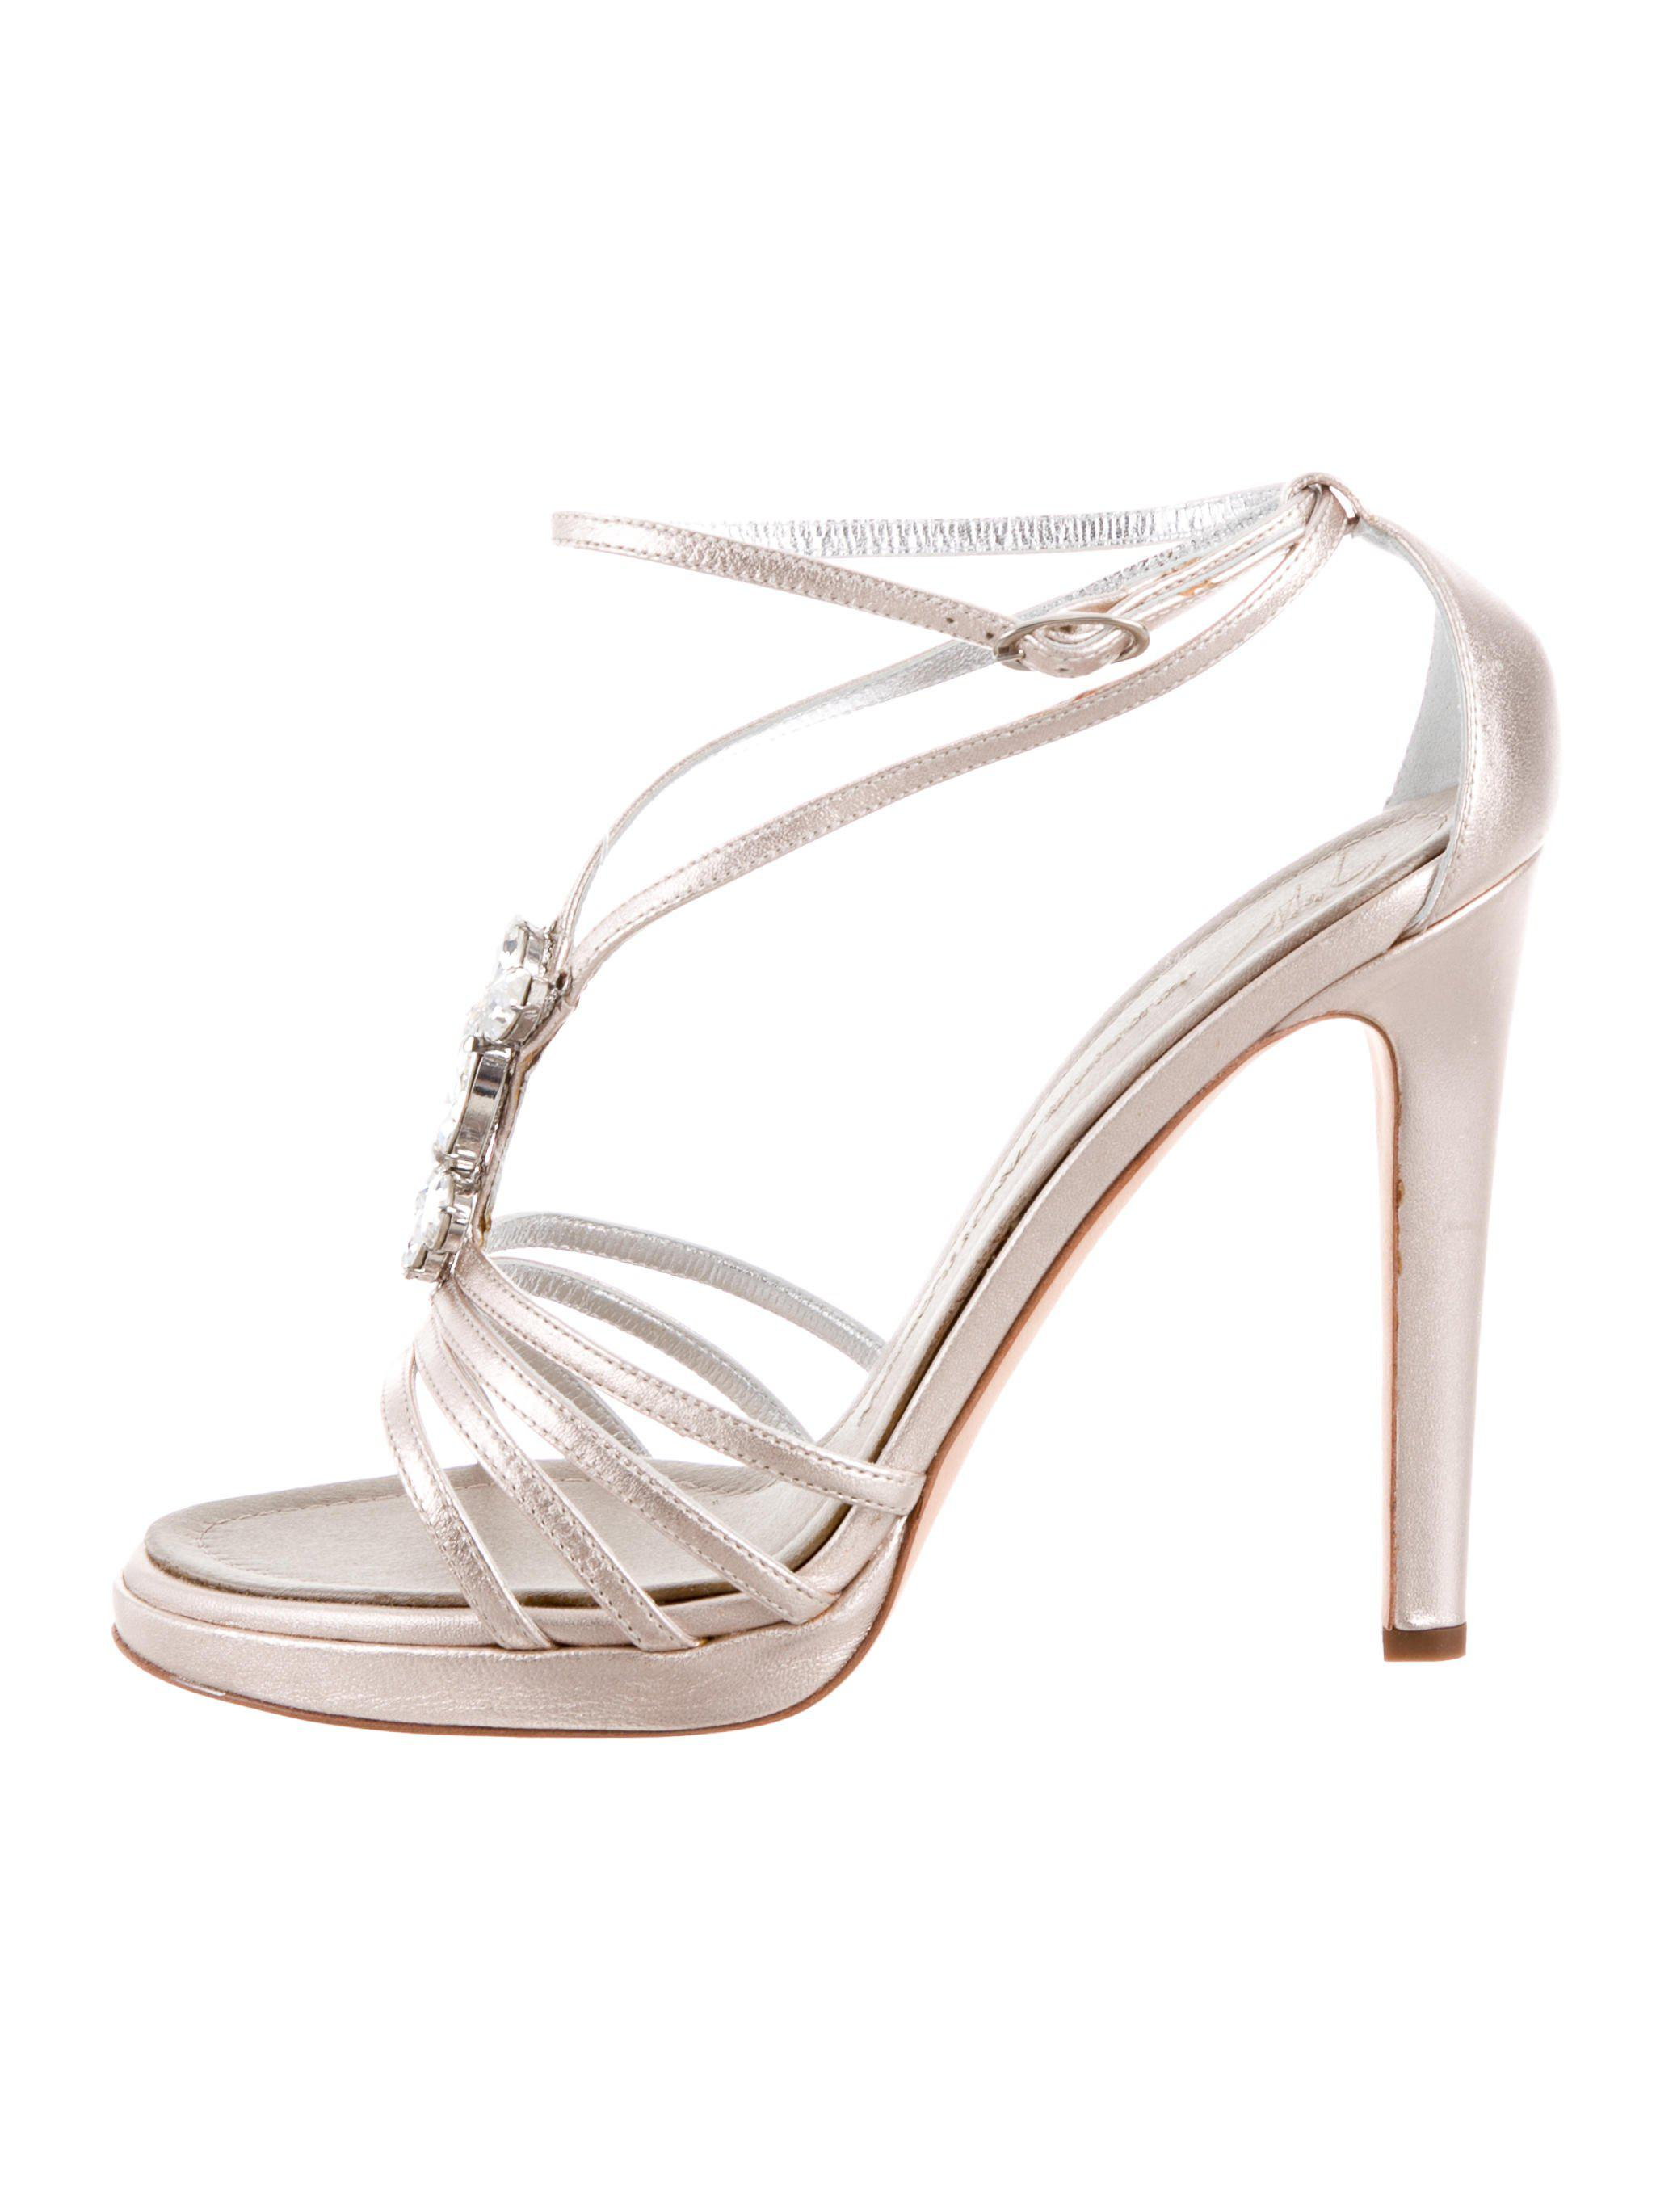 e115cccac4 Lyst - Giuseppe Zanotti Embellished Sandals W/ Tags Gold in Metallic